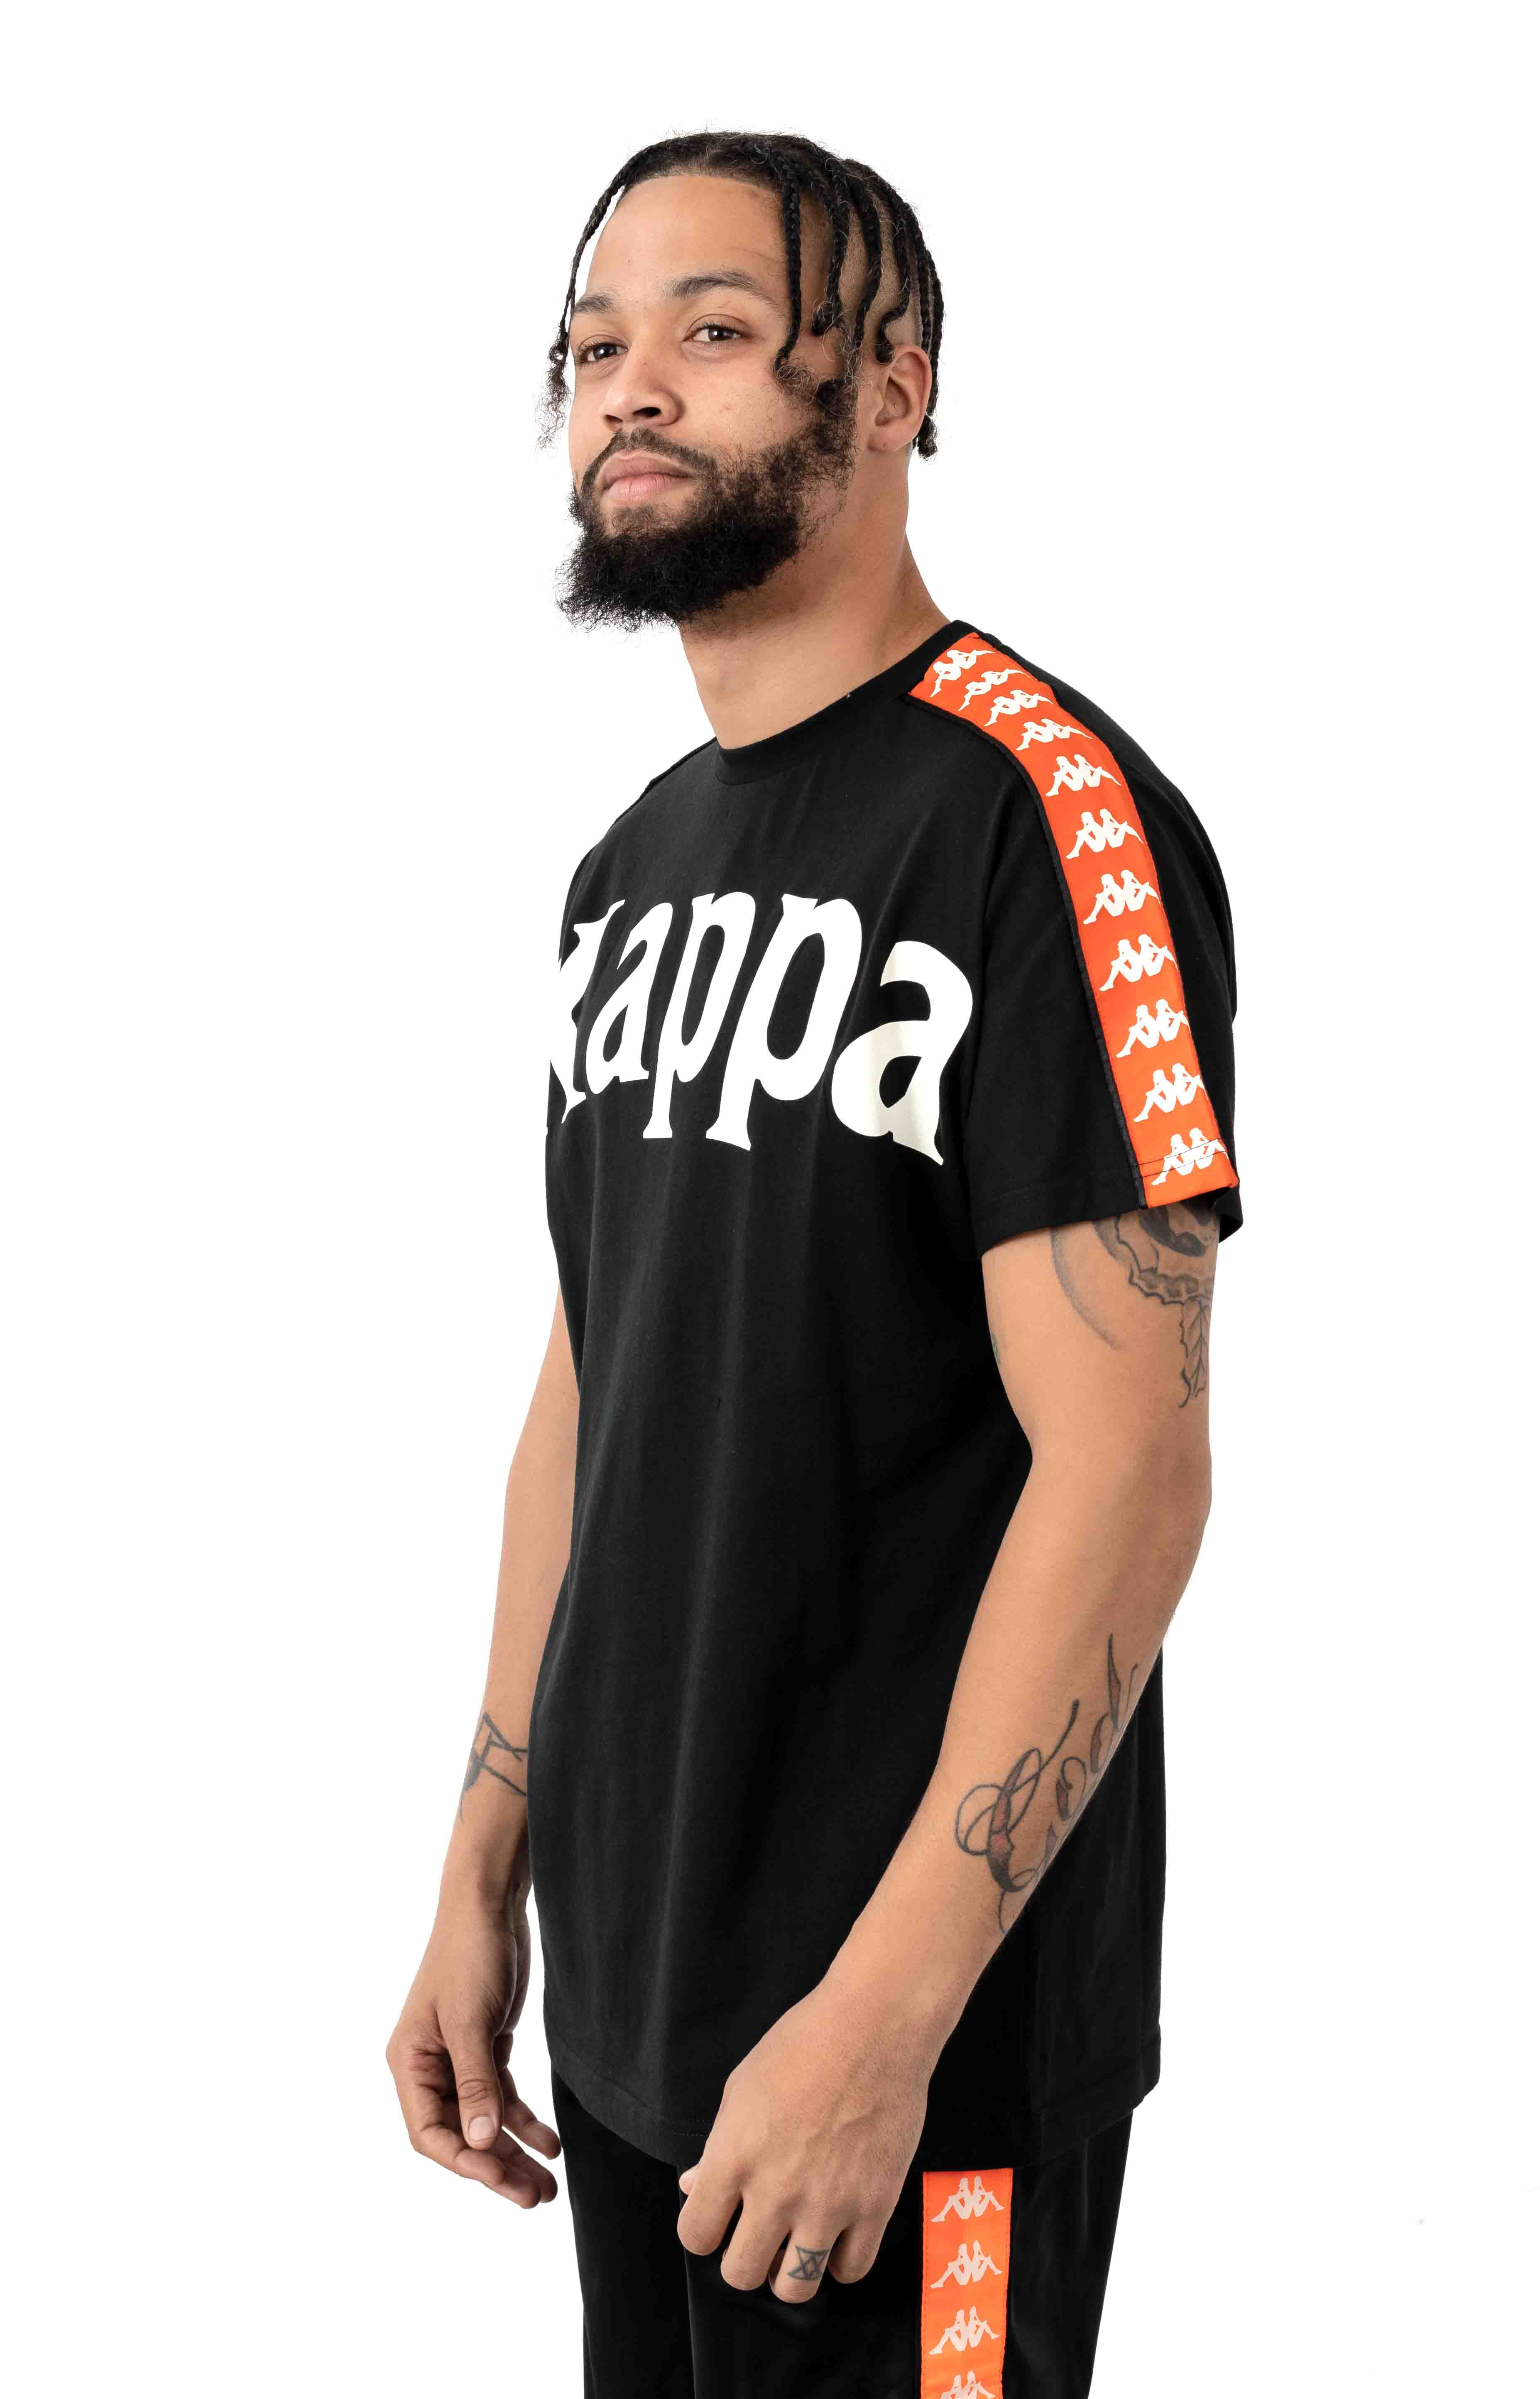 222 Banda Cultin T-Shirt - Black/Orange 2